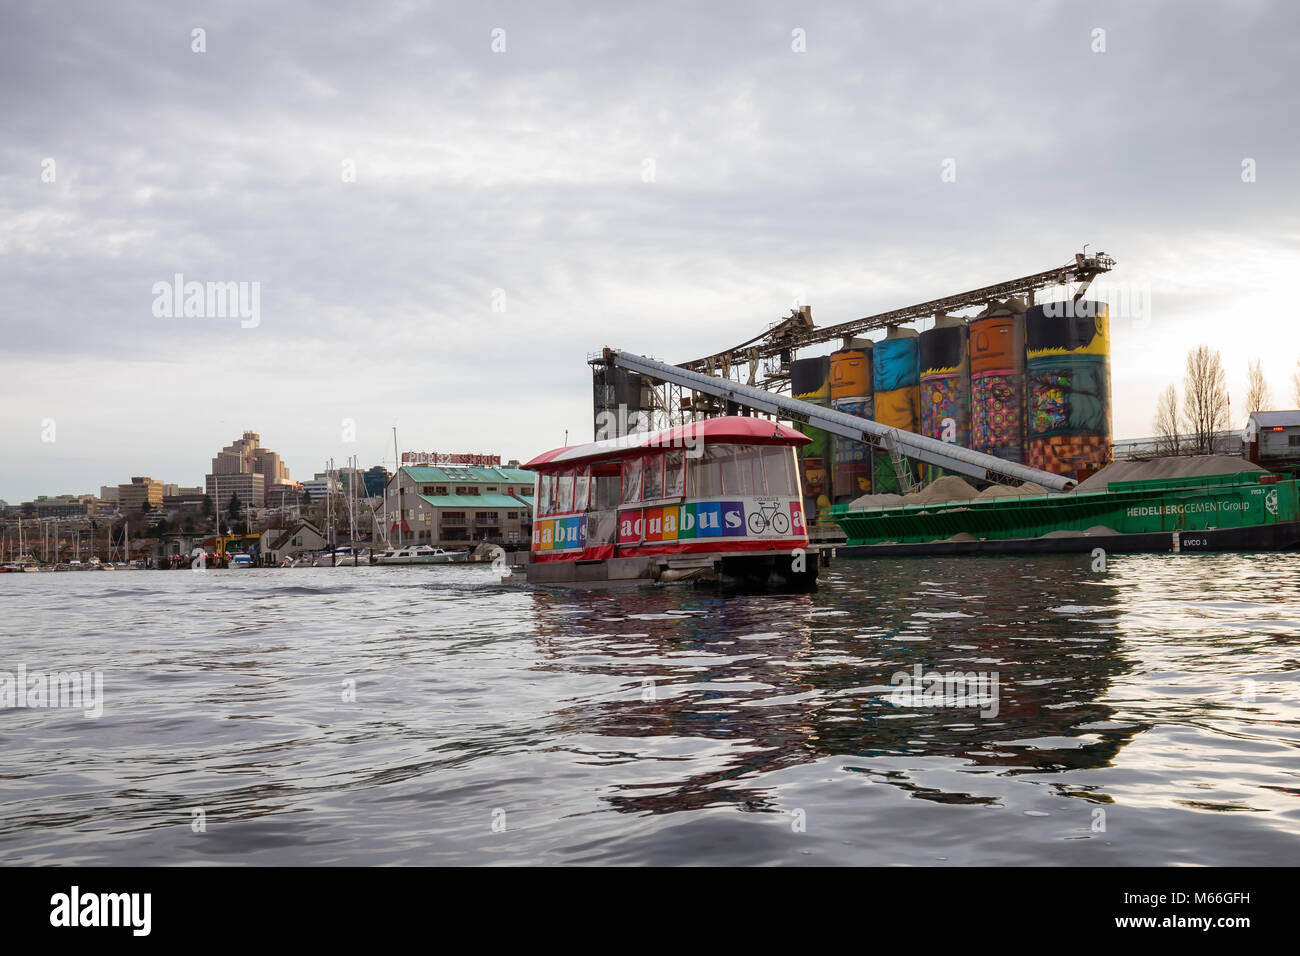 Downtown Vancouver, British Columbia, Canada - January 28, 2017 - A small taxi ferry boat is riding in False Creek Stock Photo